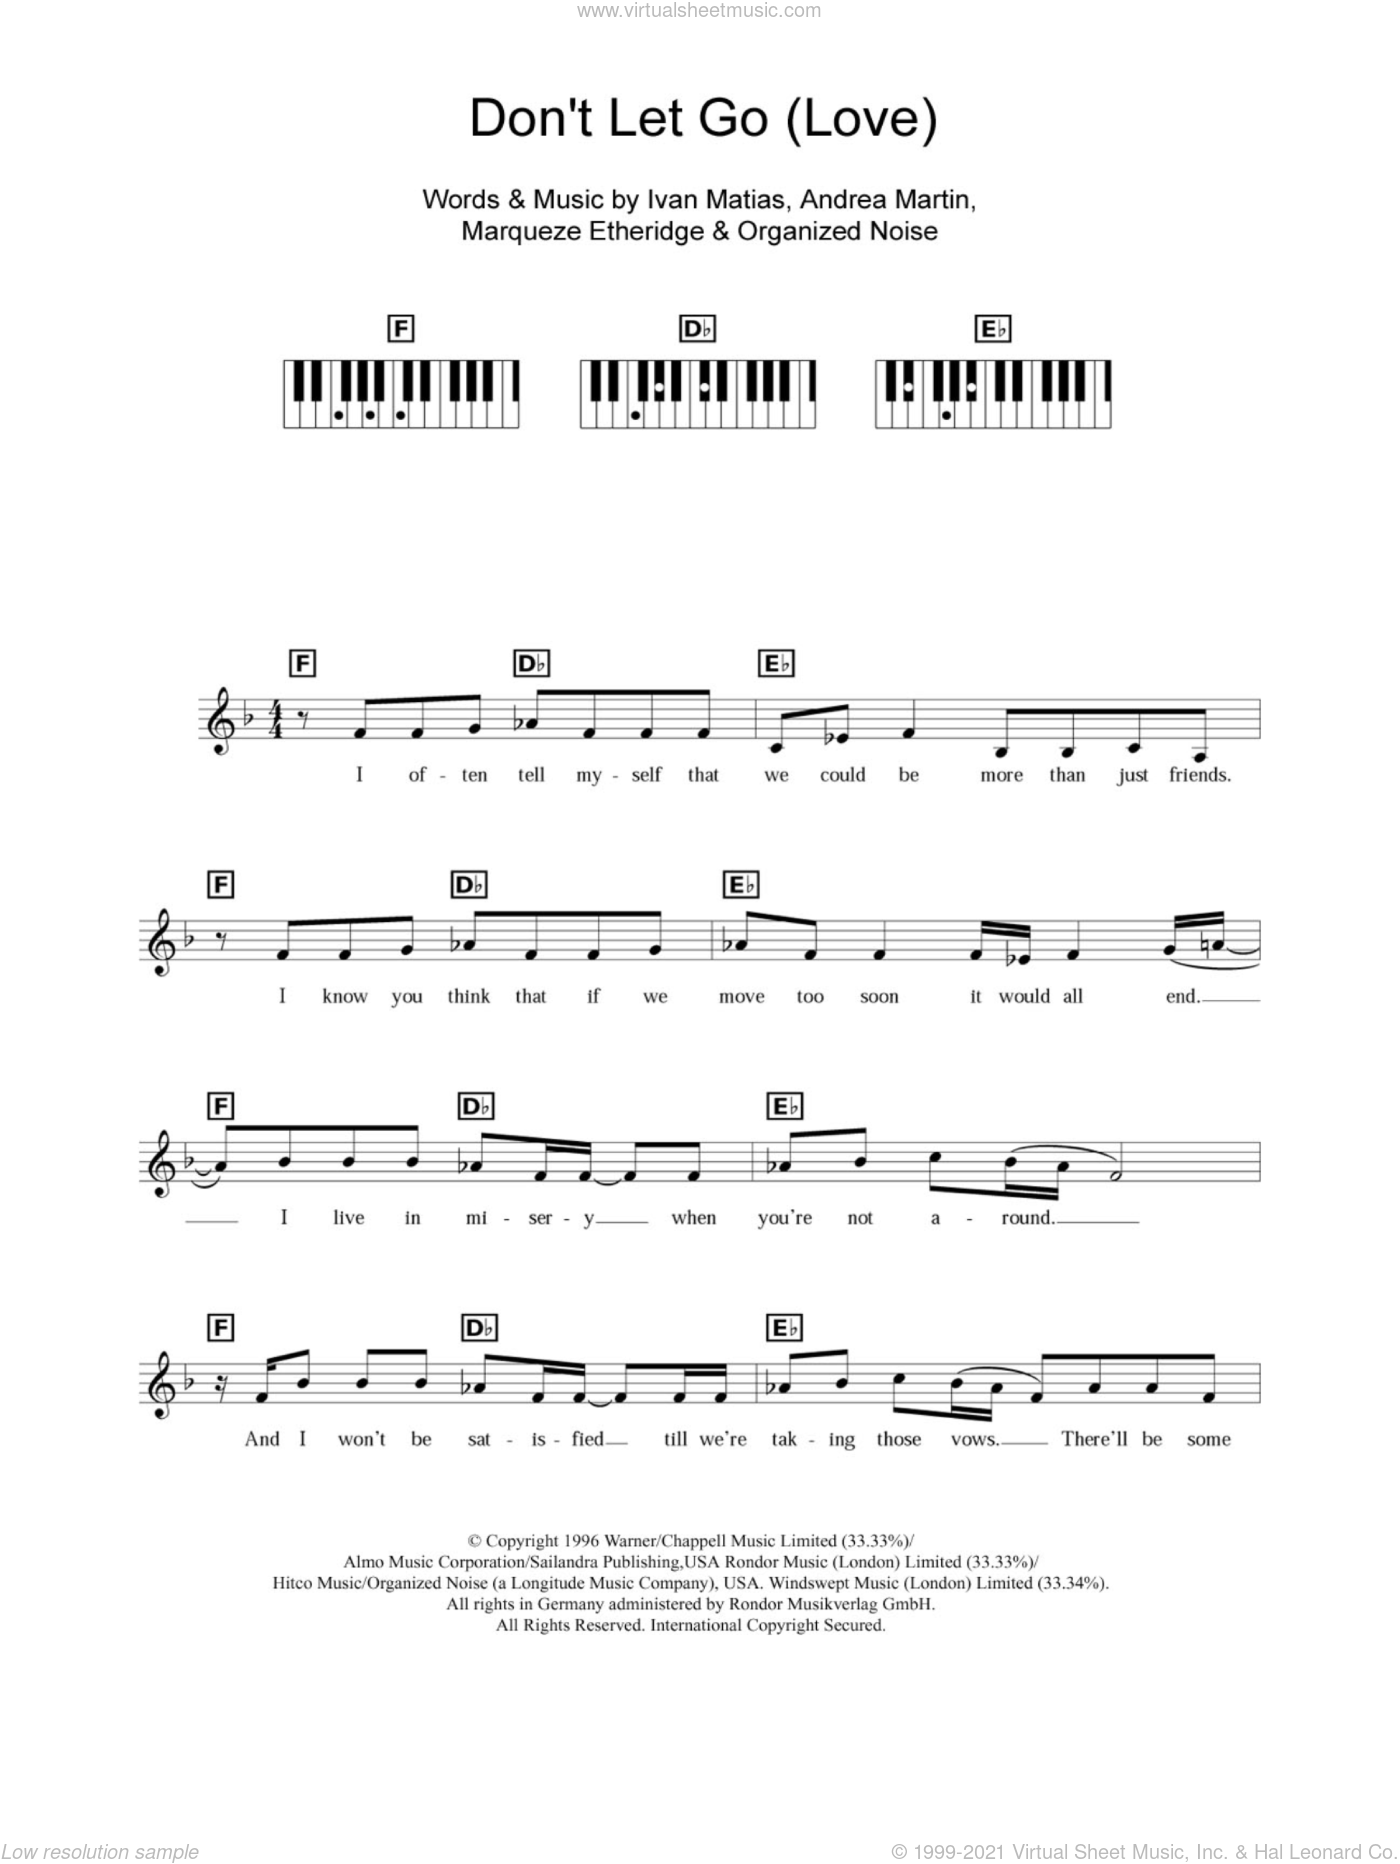 Don't Let Go (Love) sheet music for piano solo (chords, lyrics, melody) by Organized Noise